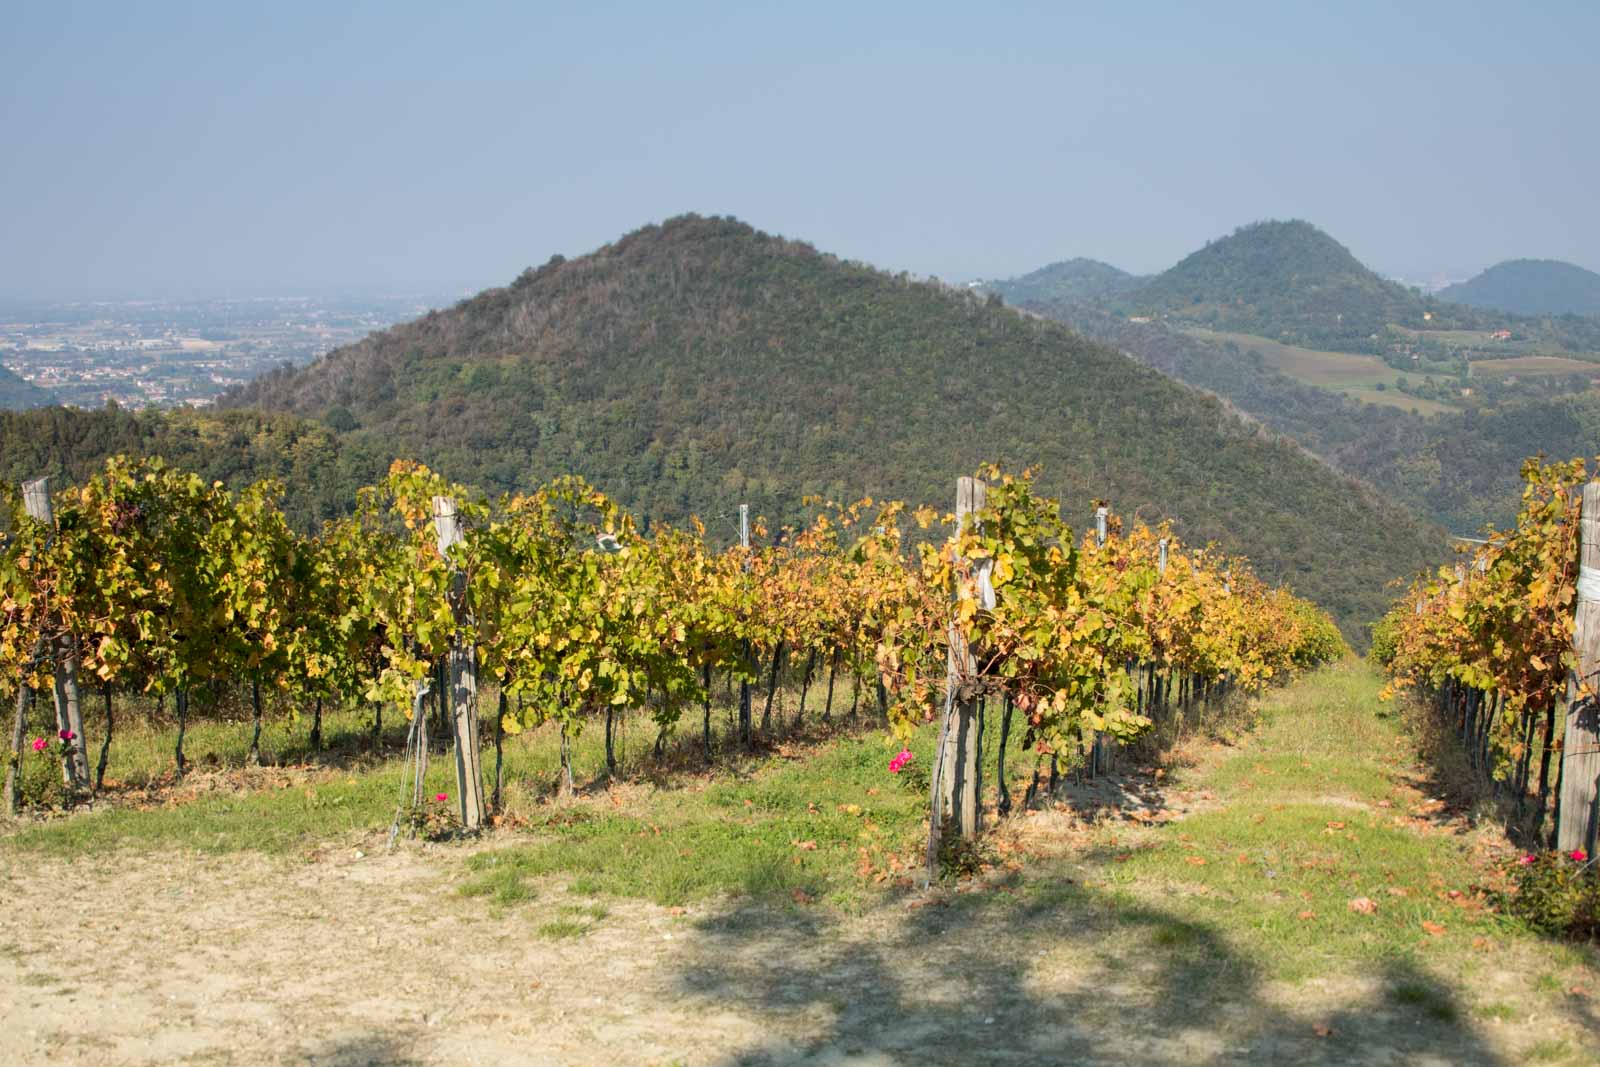 The Terra Bianca di Piro vineyard with the volcanic outline of the hills stretching to the north. ©Kevin Day/Opening a Bottle